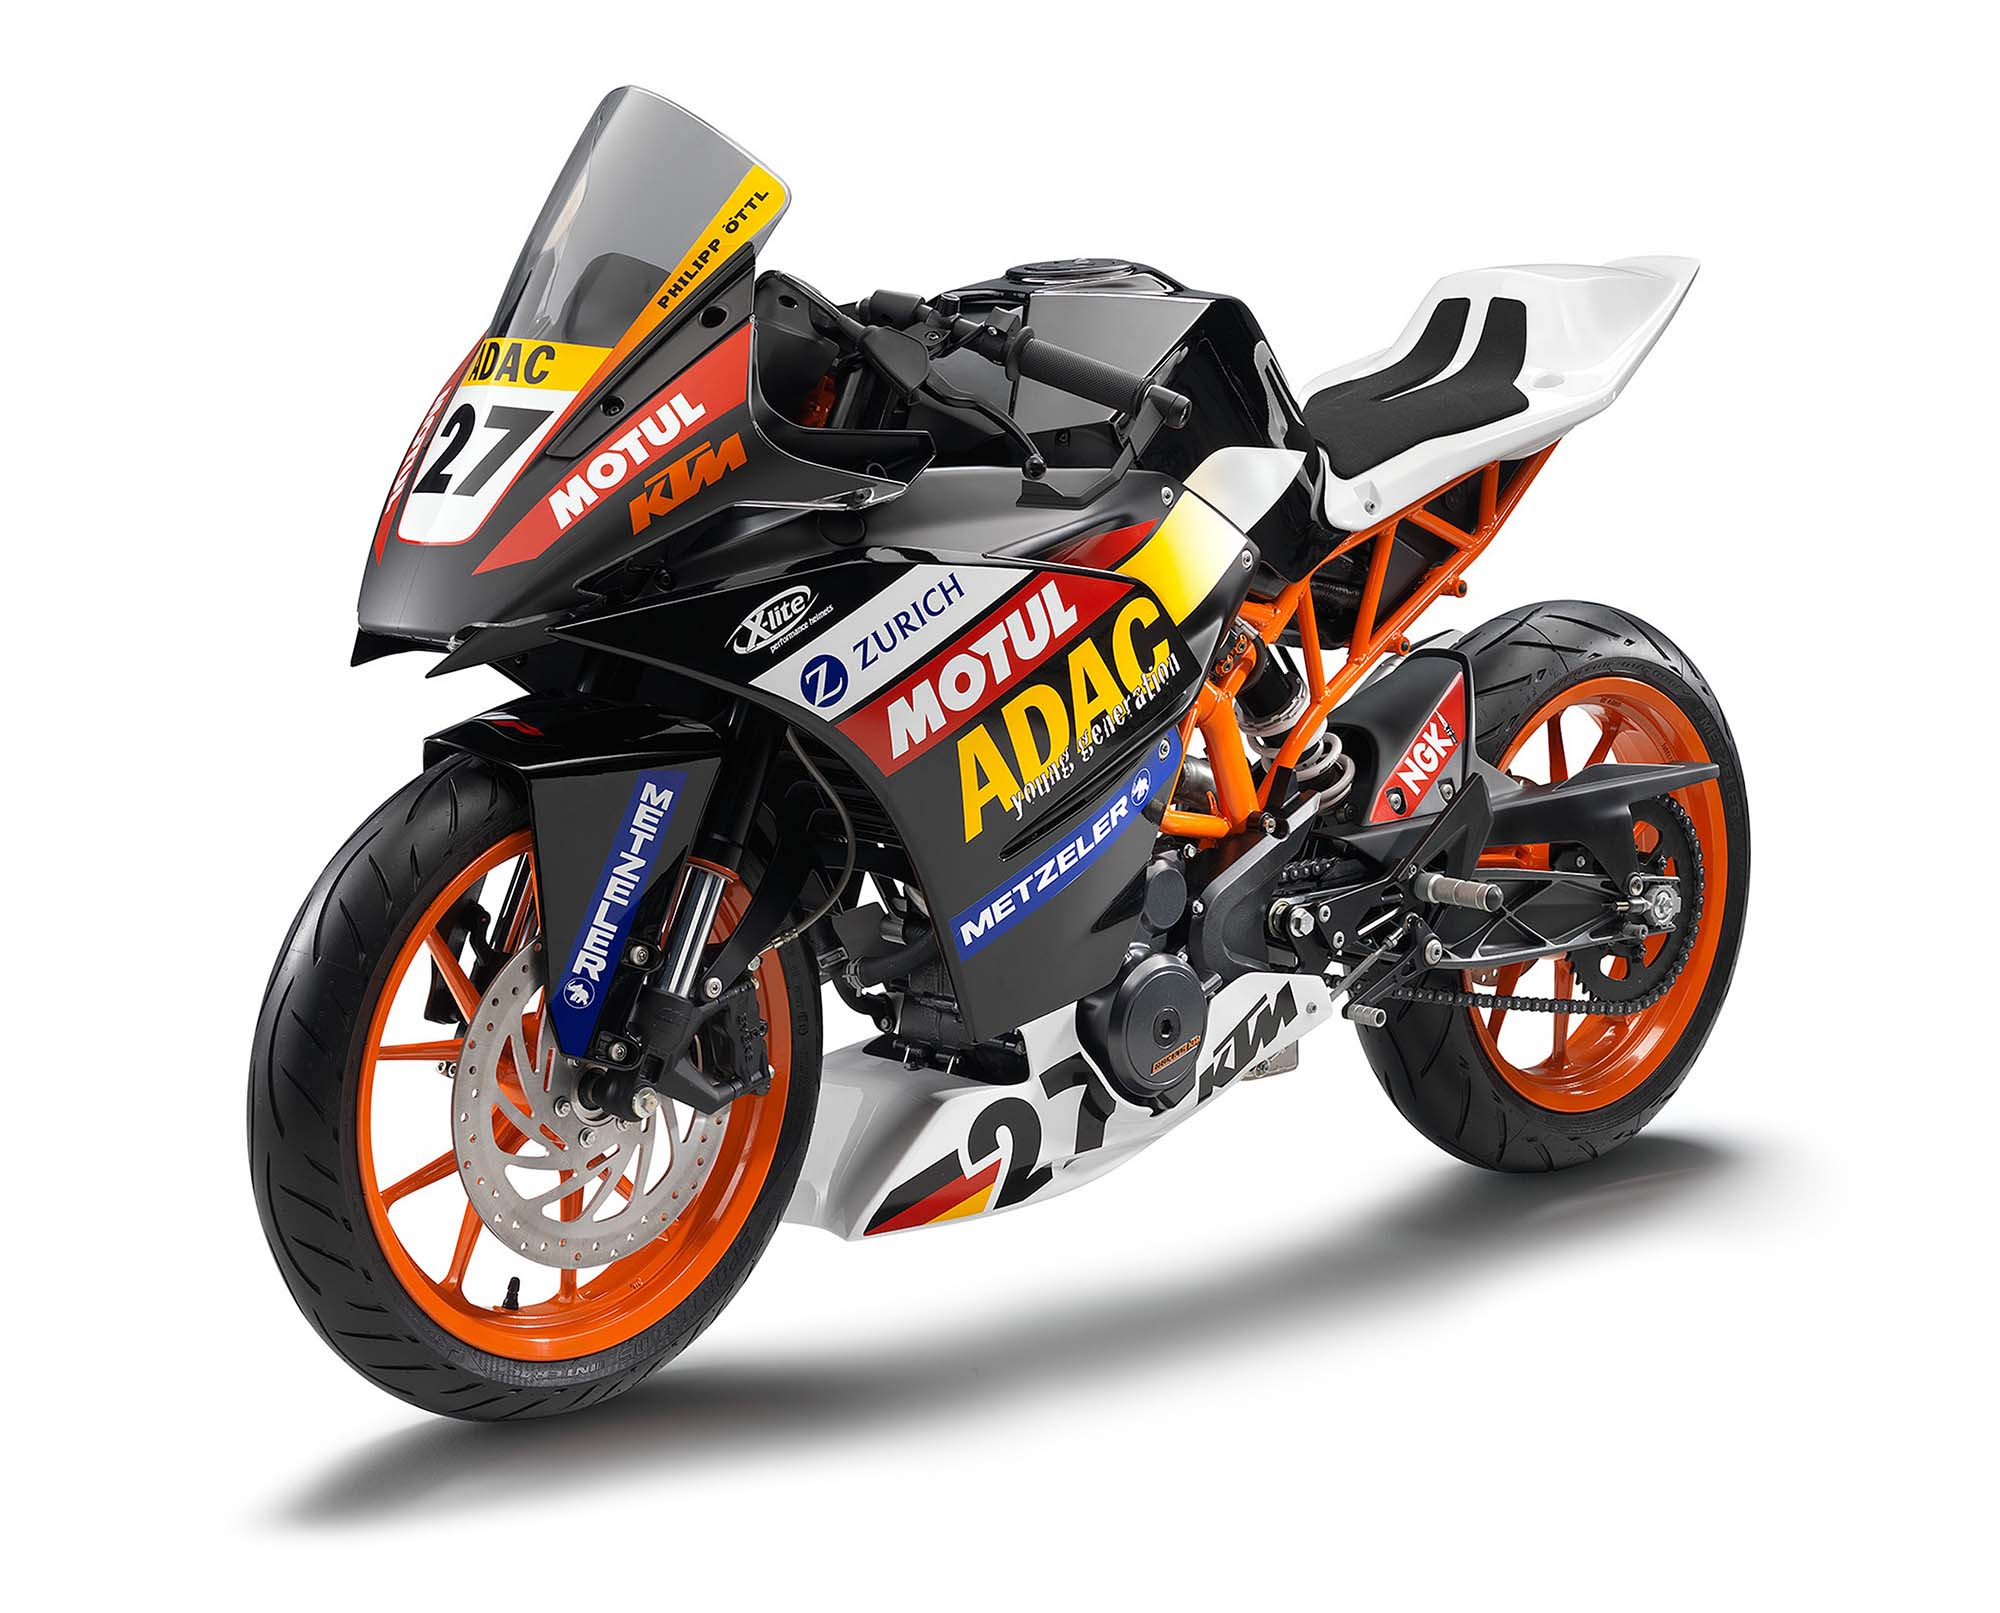 2014 KTM RC390 Cup - A Glimpse of What's to Come - Asphalt ... Race Bike Photos